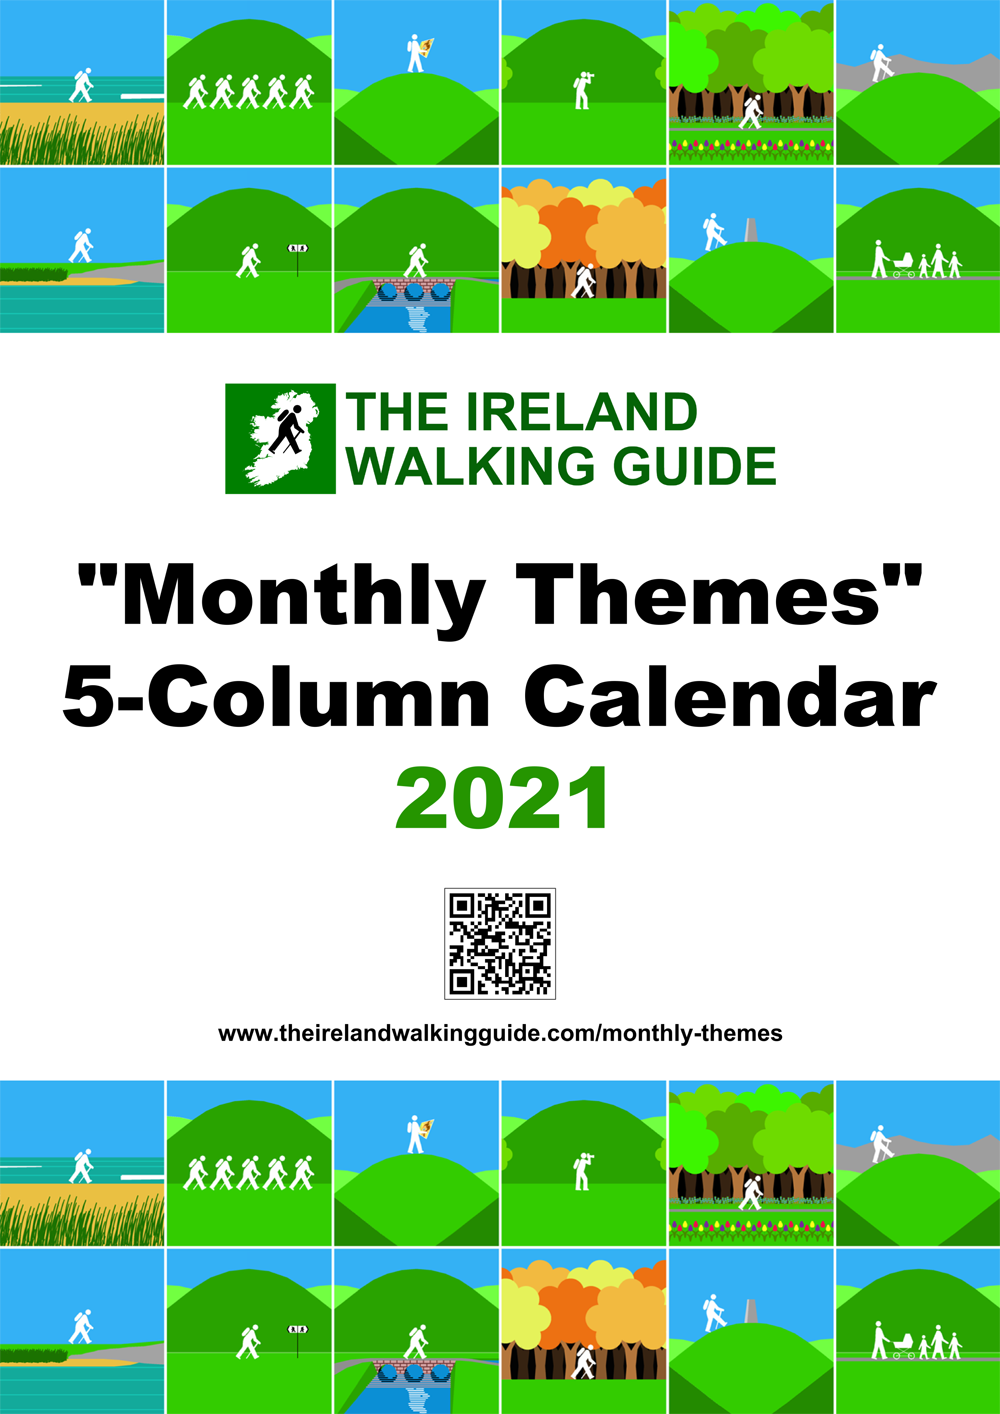 The Ireland Walking Guide 2021 Monthly Themes 5-Column Calendar